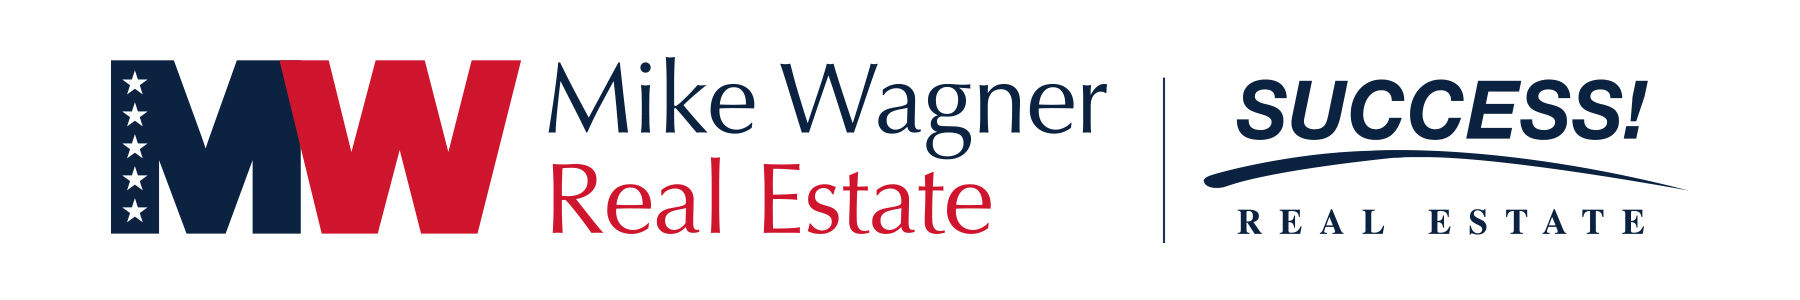 Mike Wagner Real Estate!